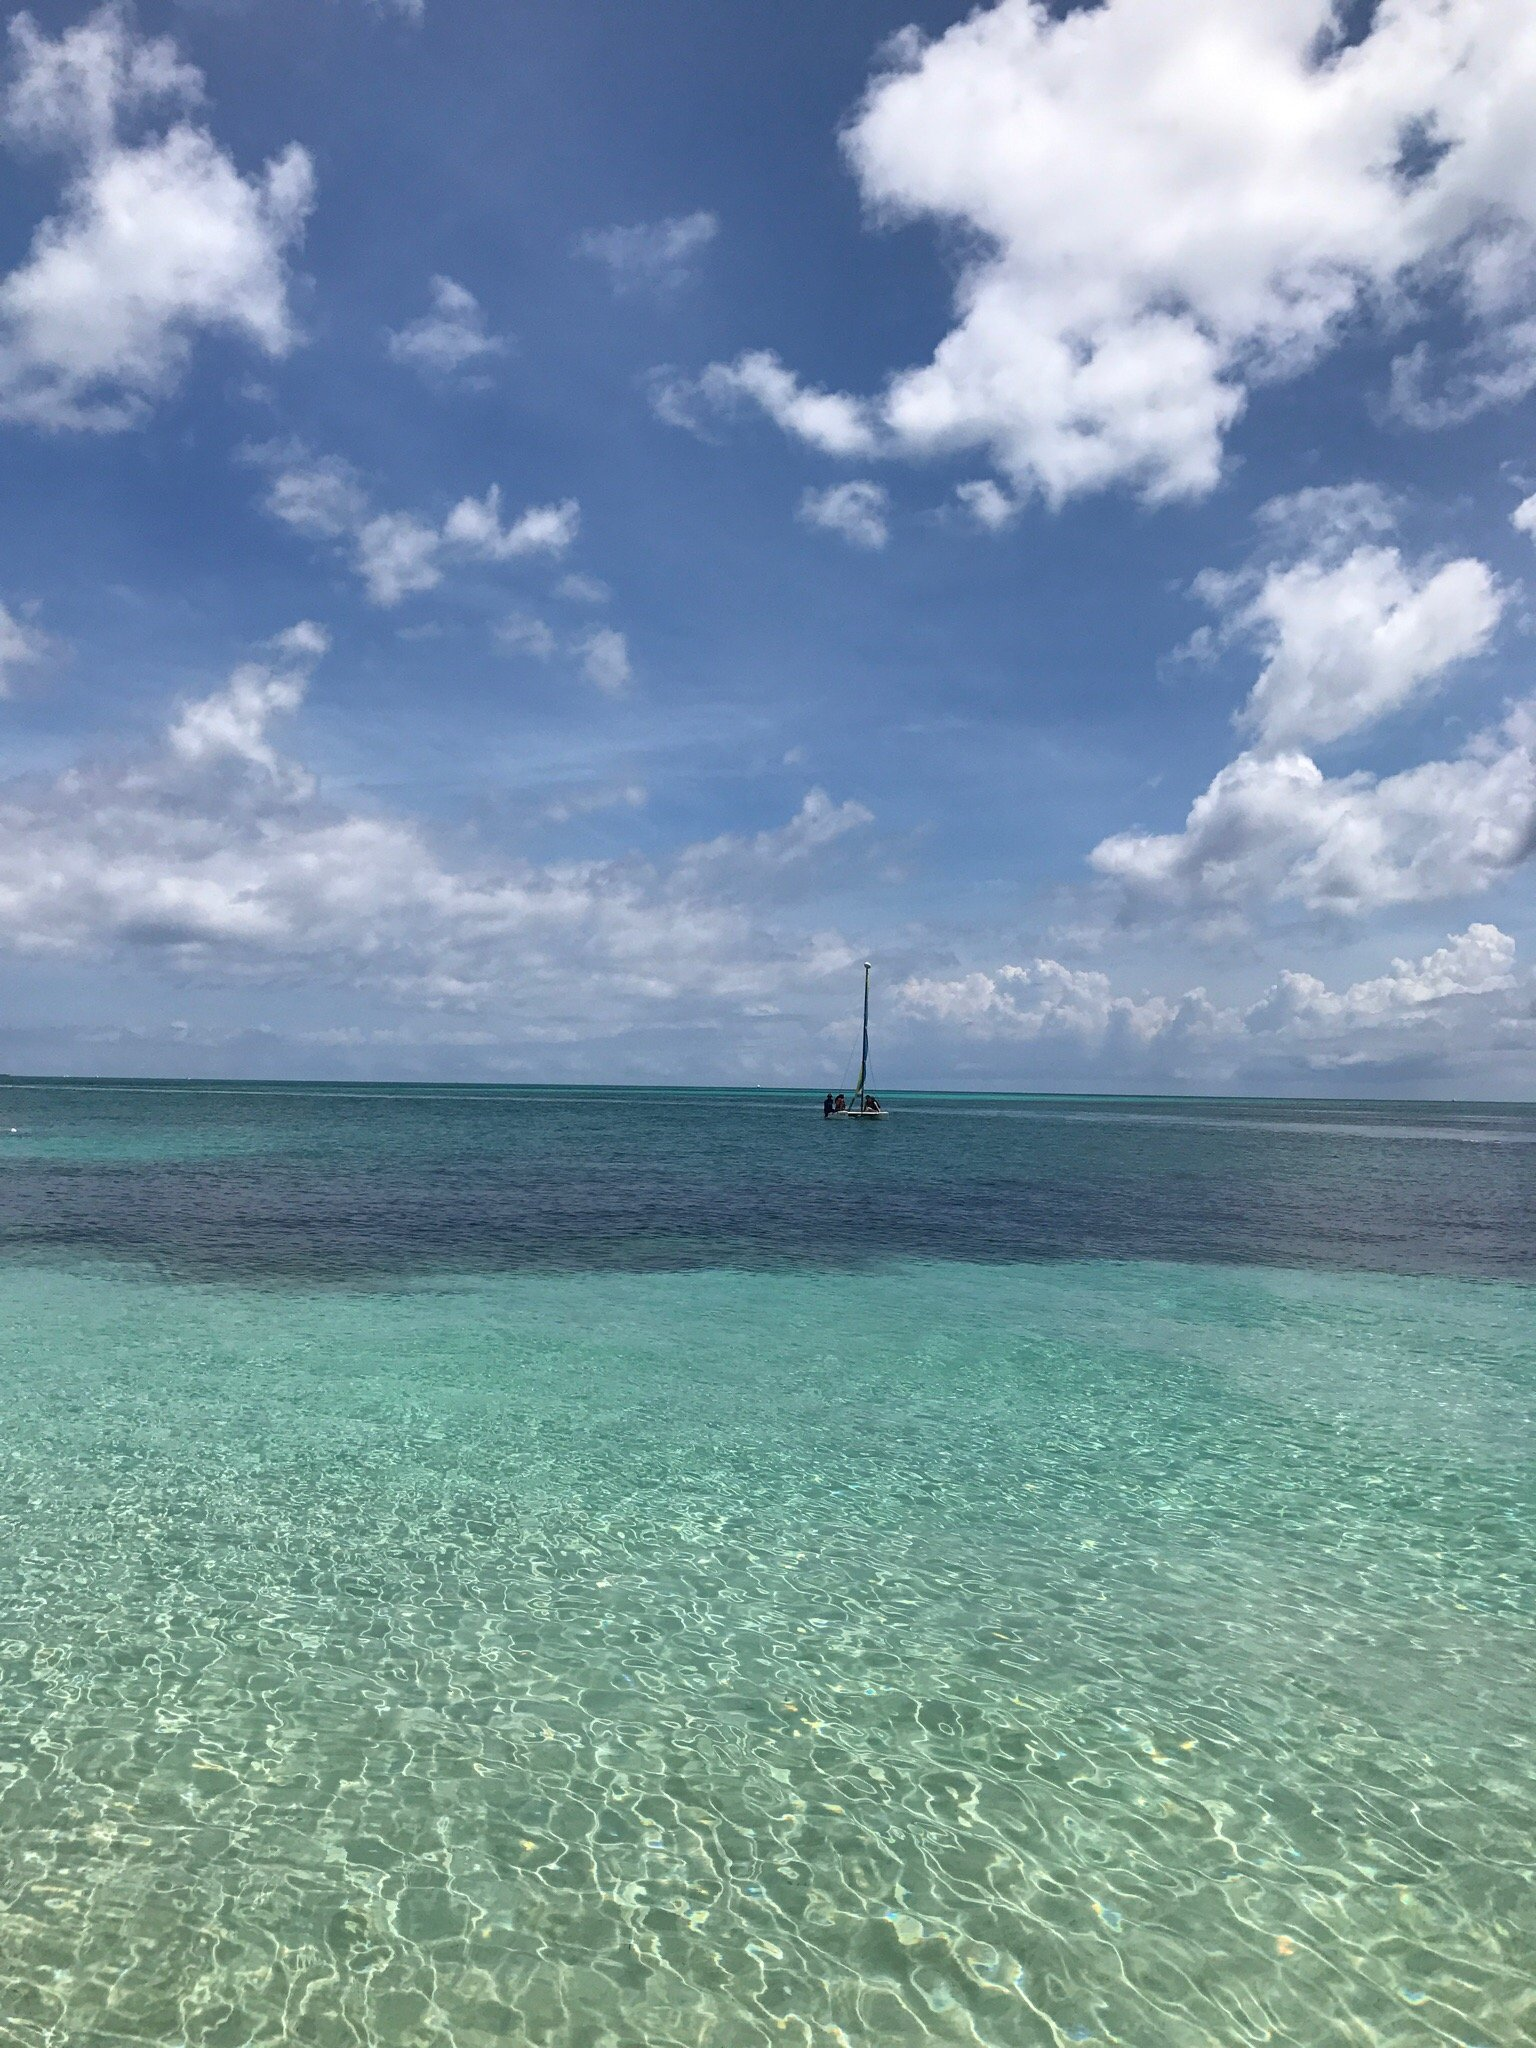 Bahamas on a summer day